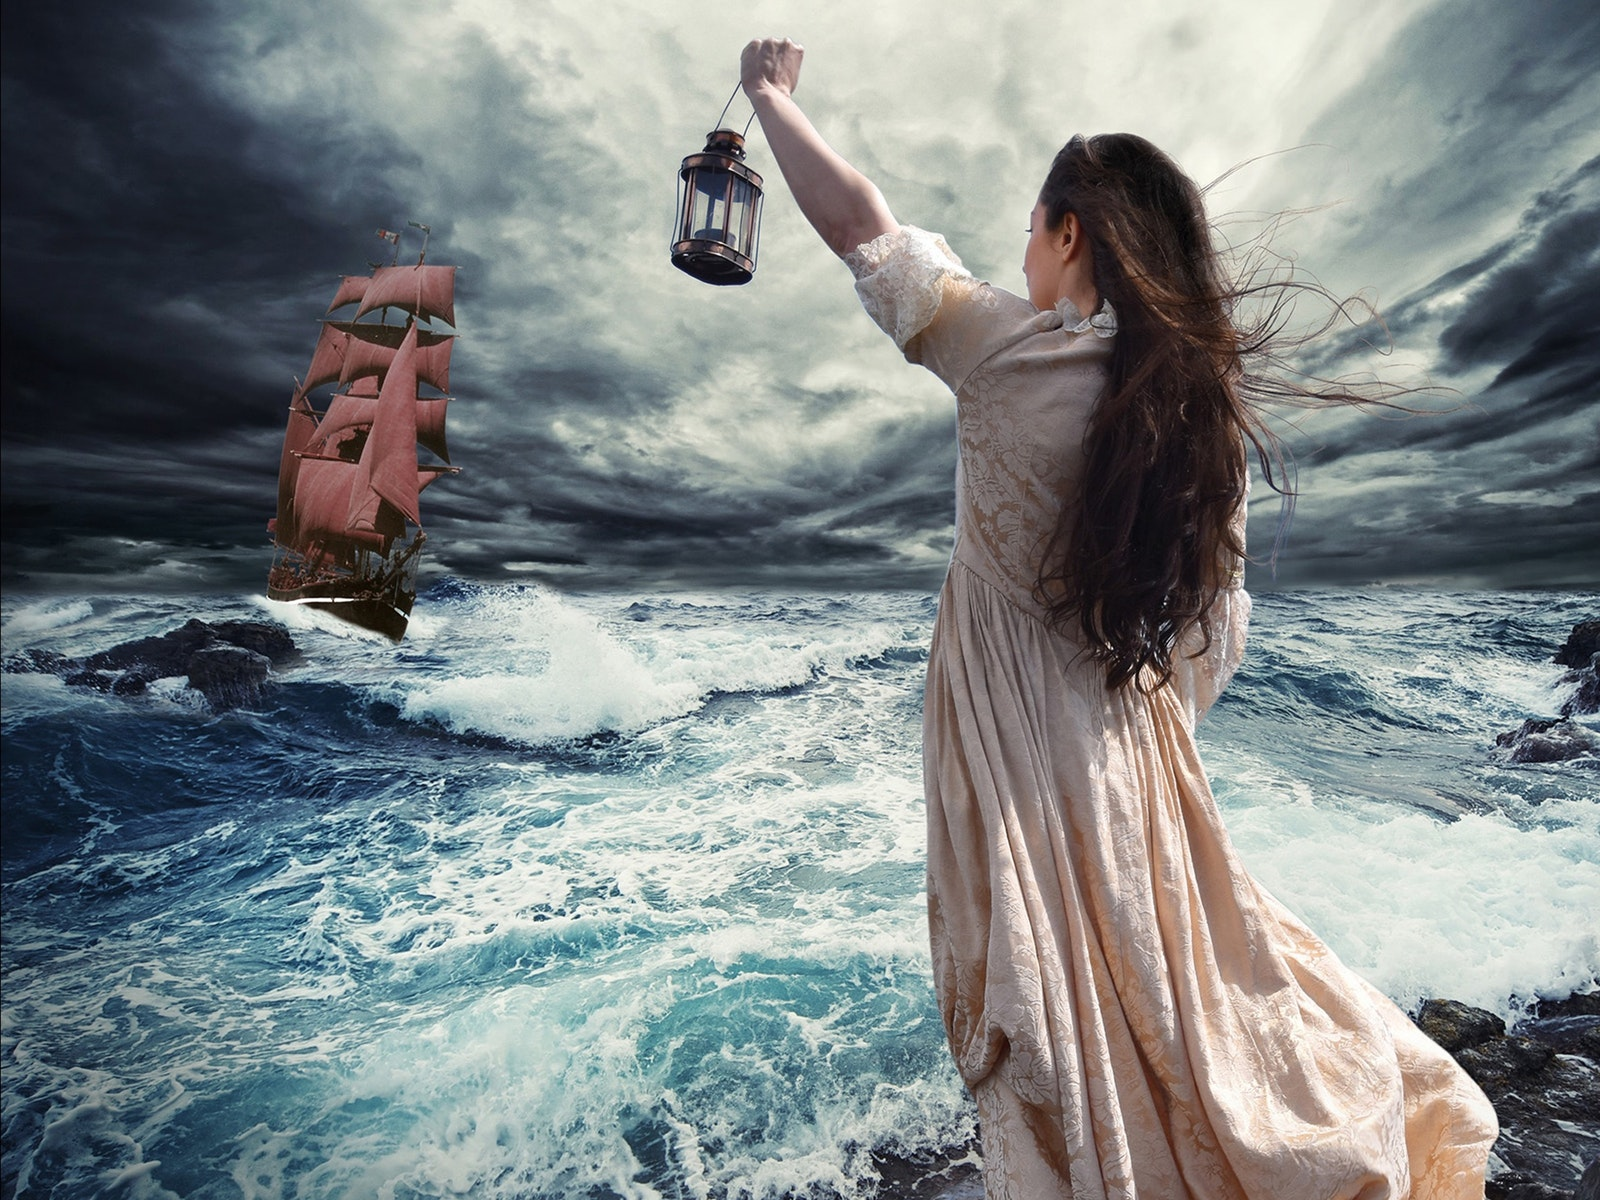 Miranda witnesses a ship foundering in the swirling tempest.